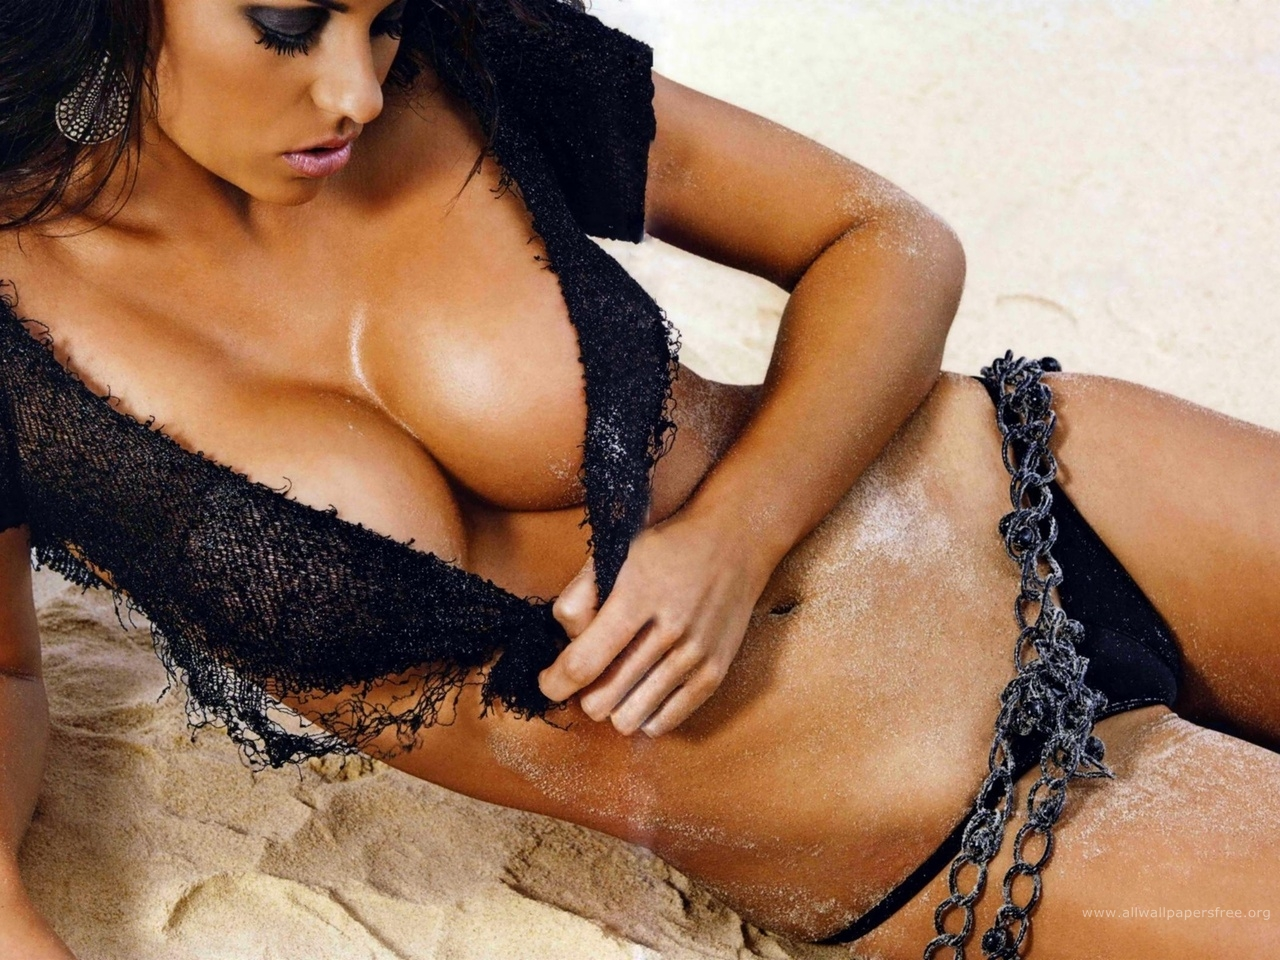 Our Asian escorts London are terrific business about